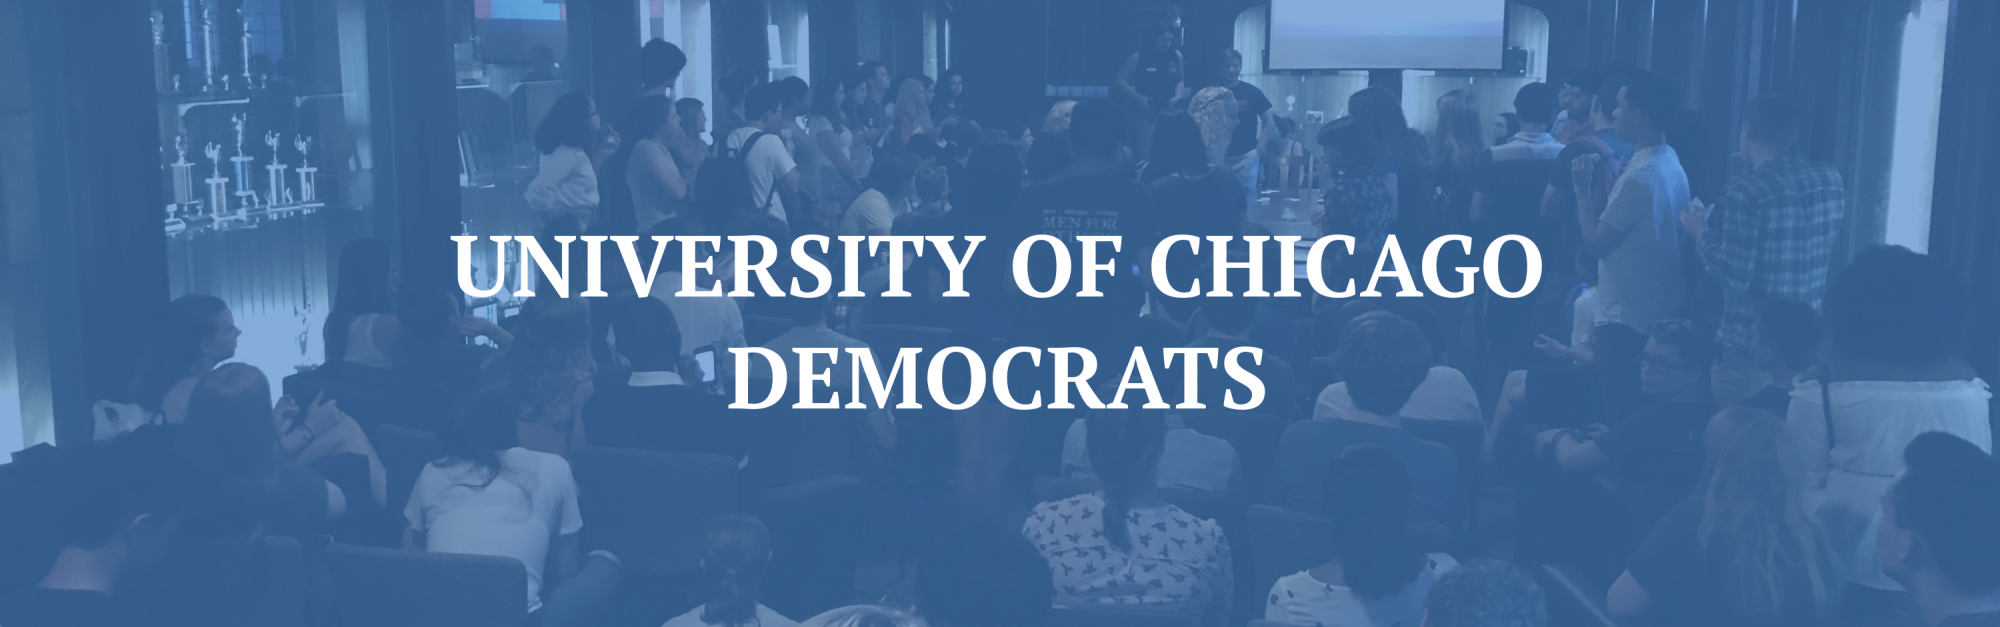 University of Chicago Democrats